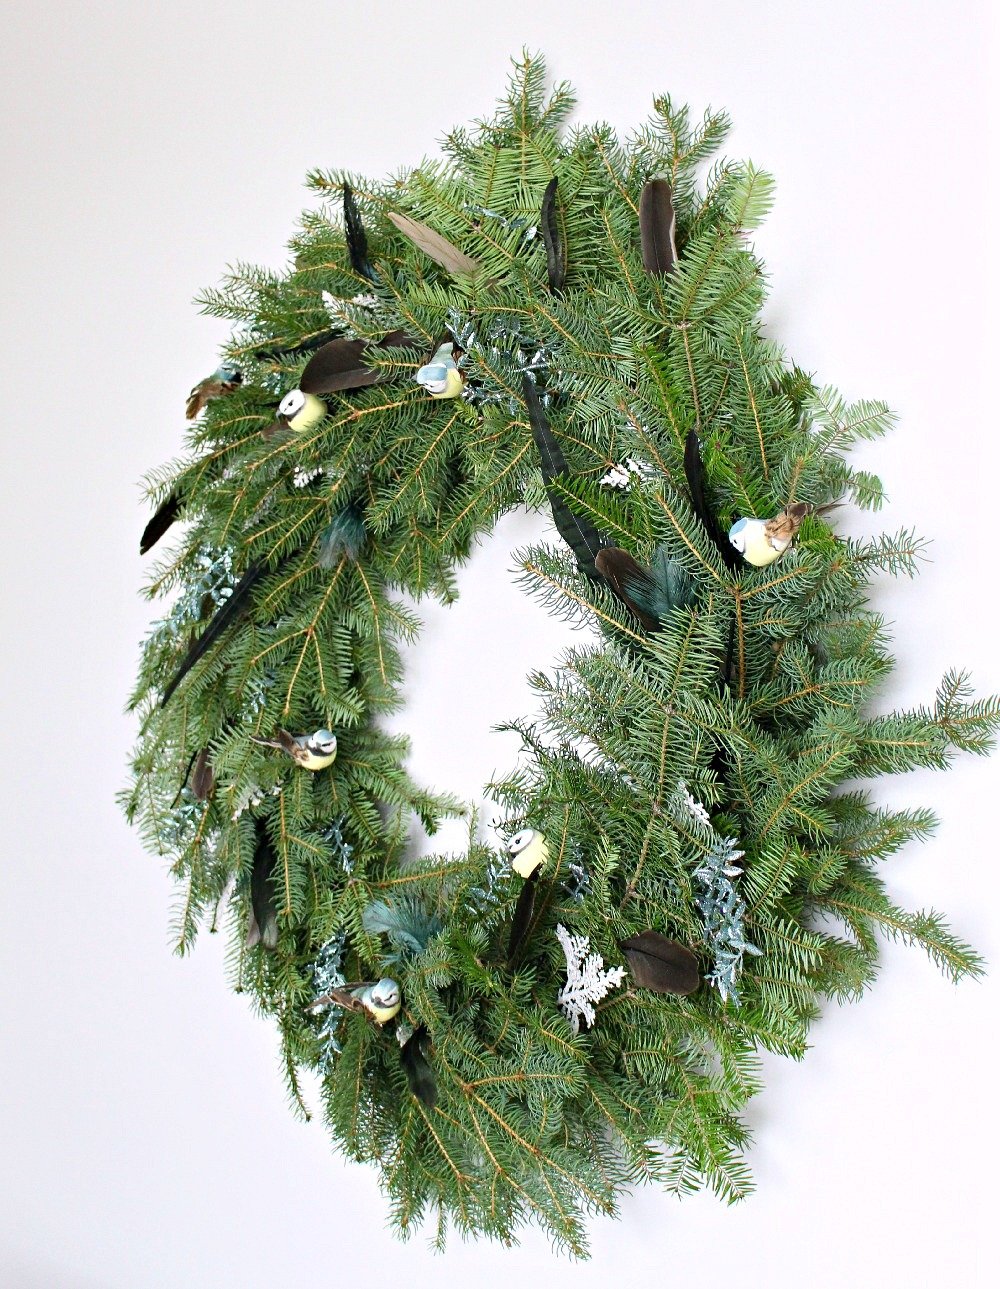 Budget-friendly wreath ideas